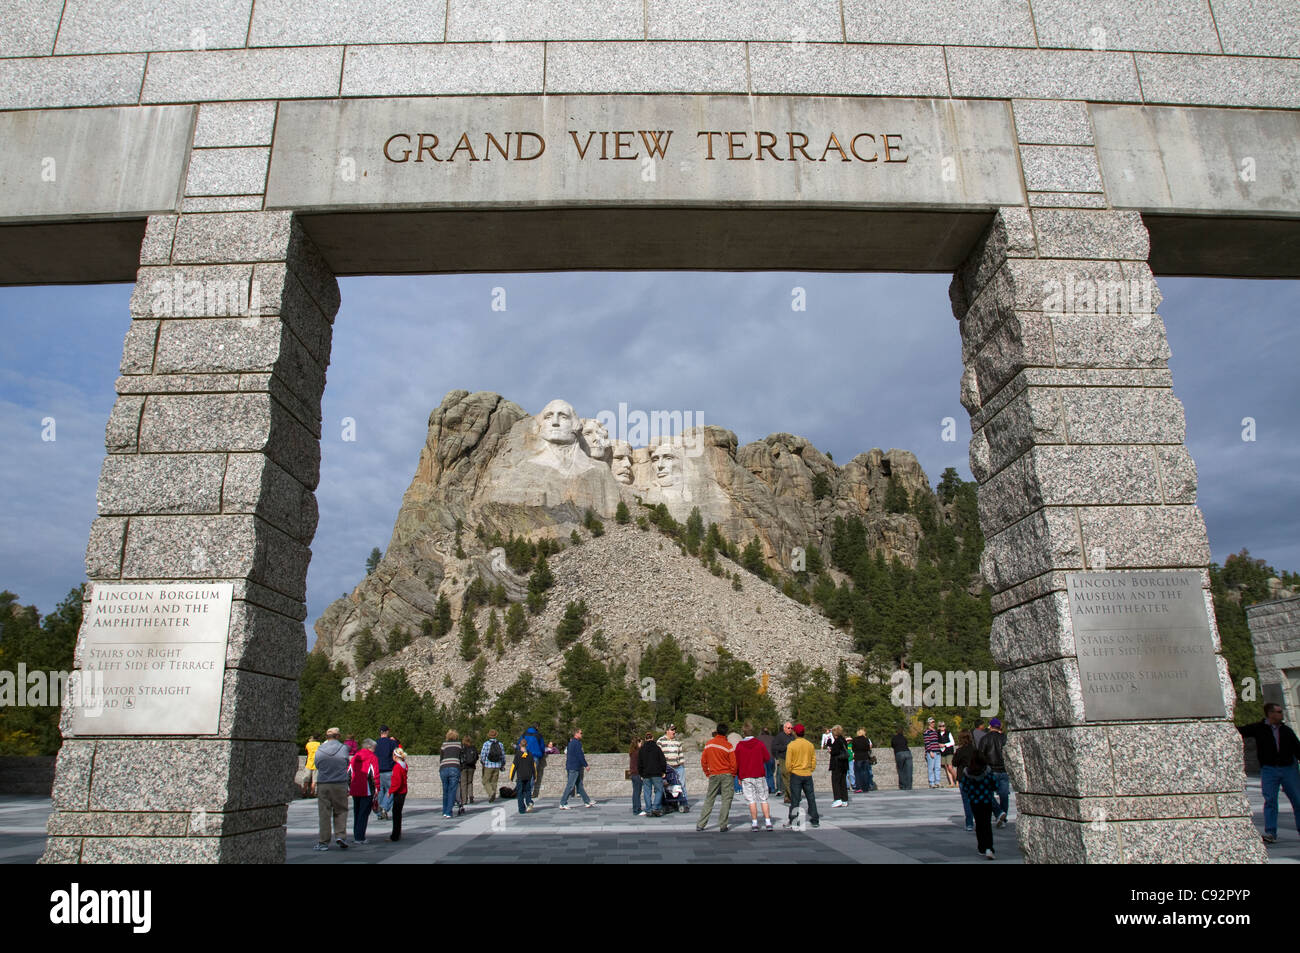 Crowd of Tourists at Grand View Terrace Archway, Mount Rushmore National Memorial, Black Hills, South Dakota, USA Stock Photo